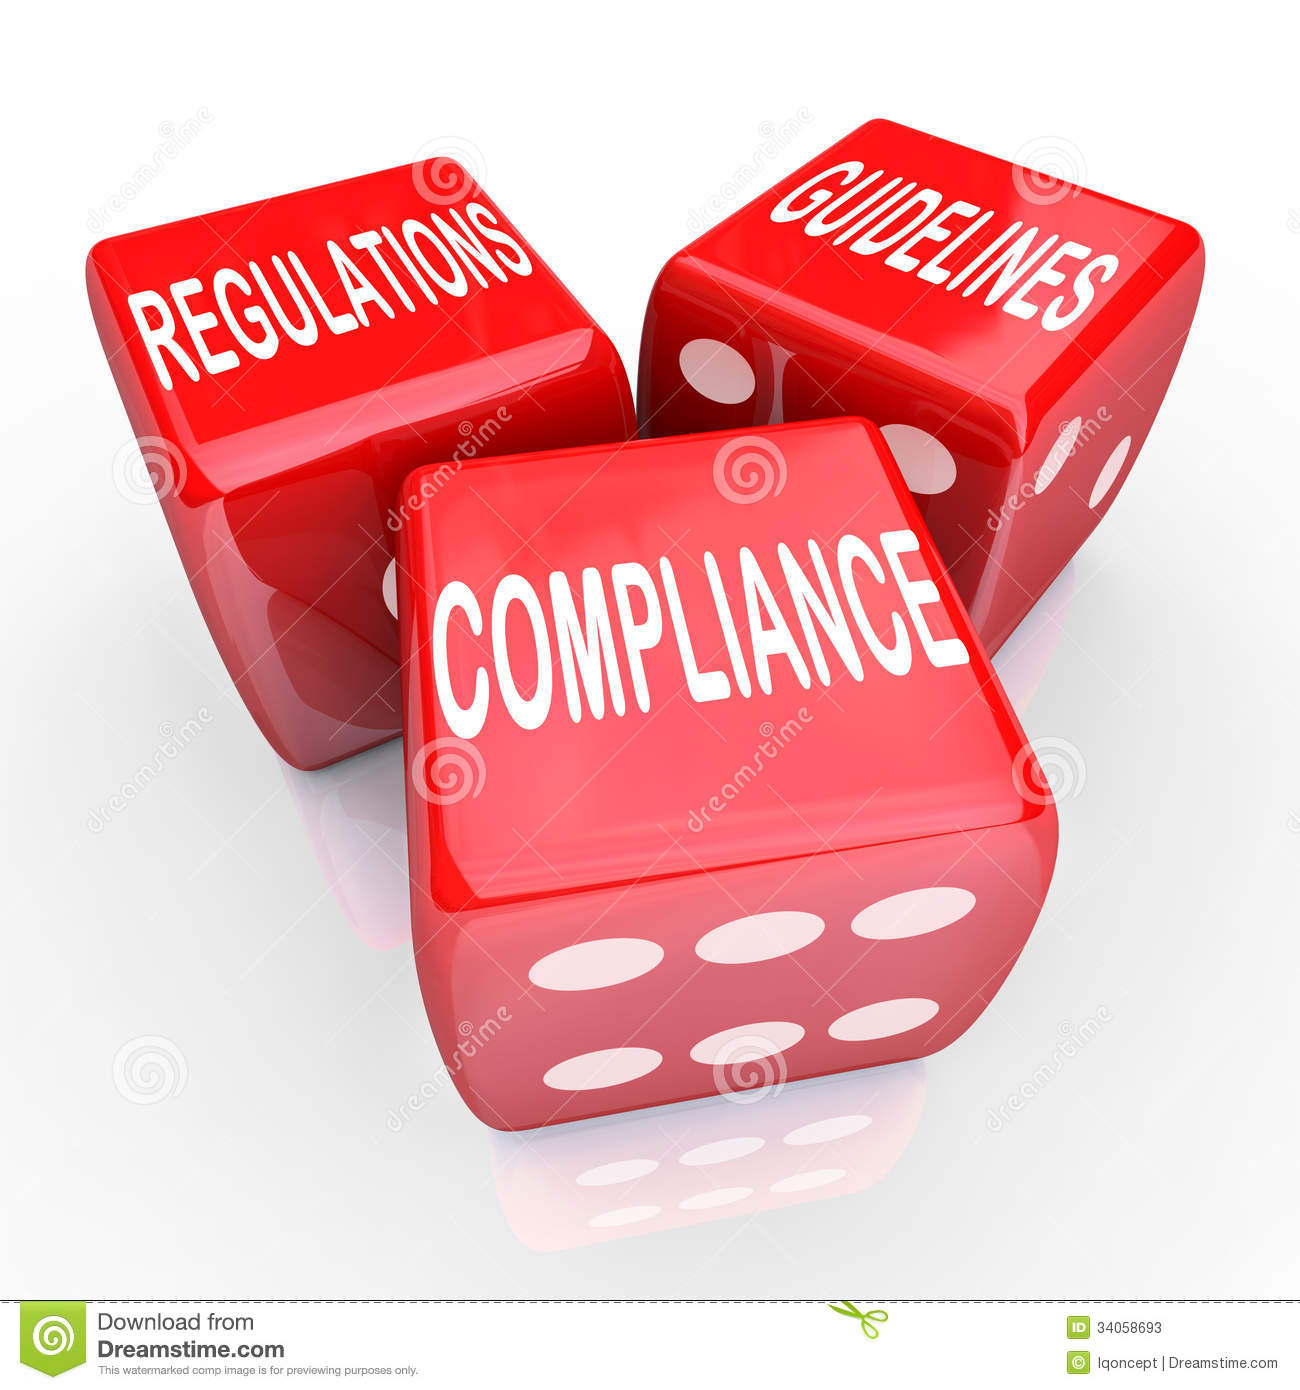 Compliance Regulations | Clipart Panda - Free Clipart Images